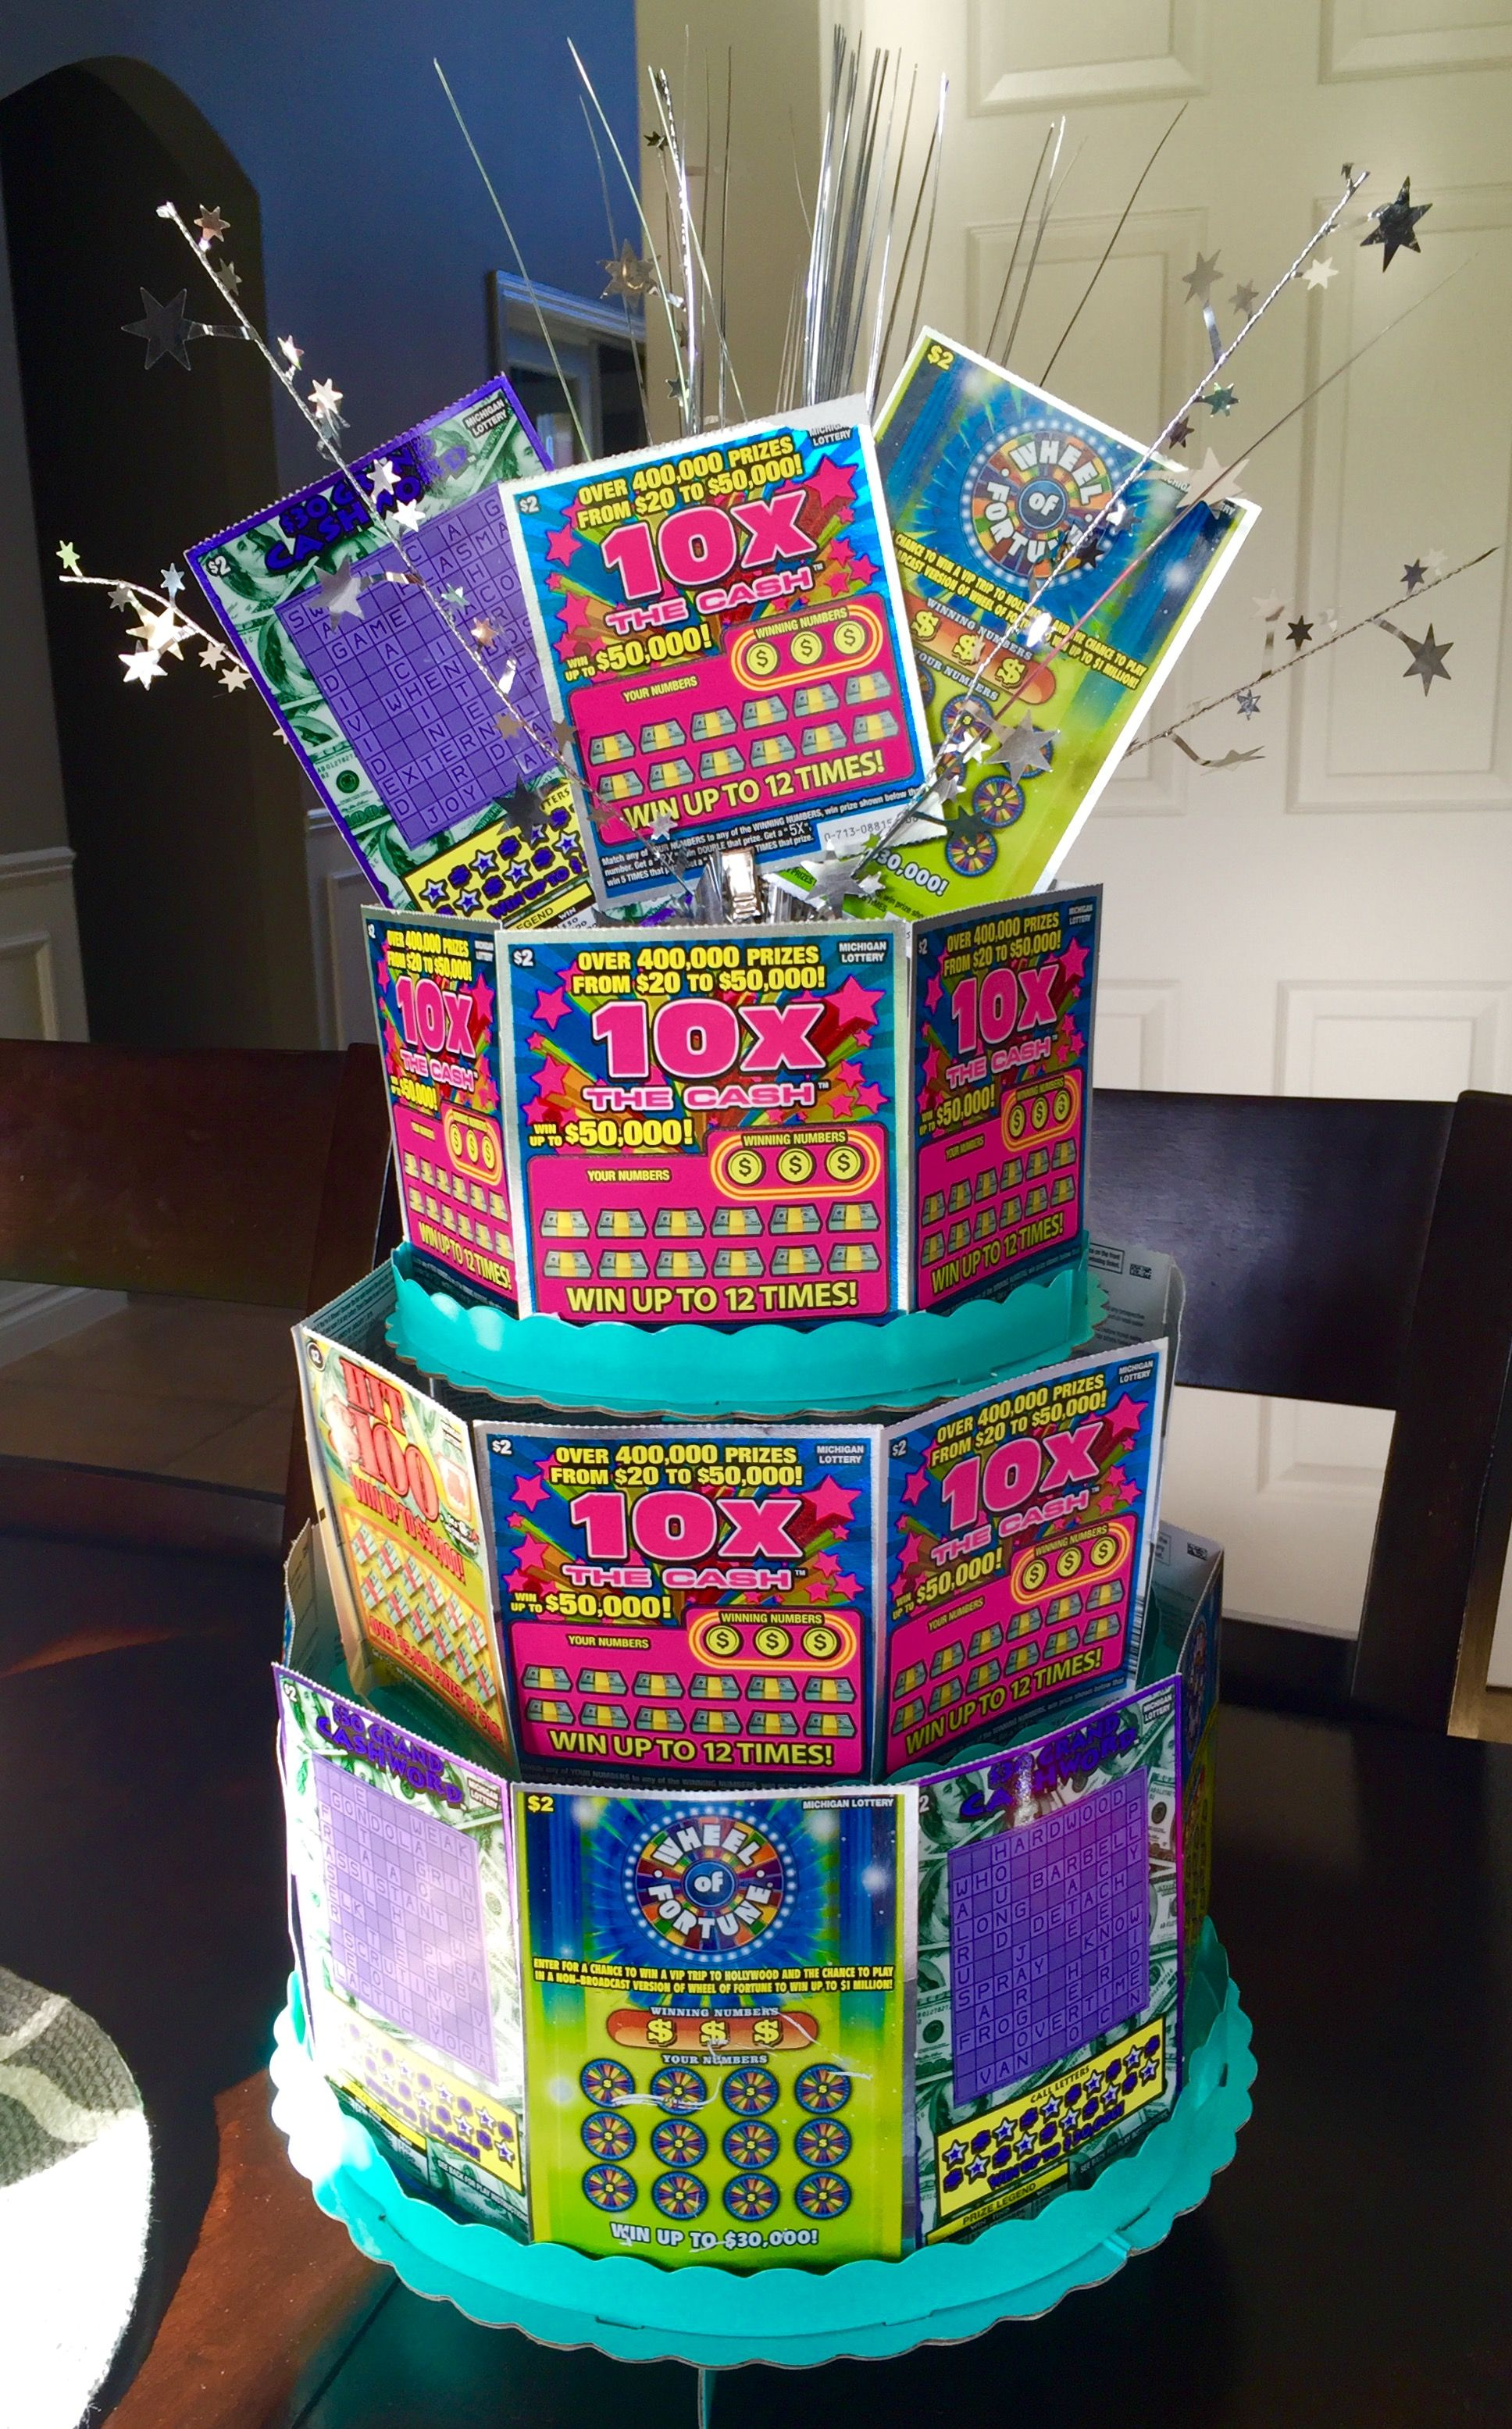 lottery cake- birthday gift/raffle ideas made from scratch off